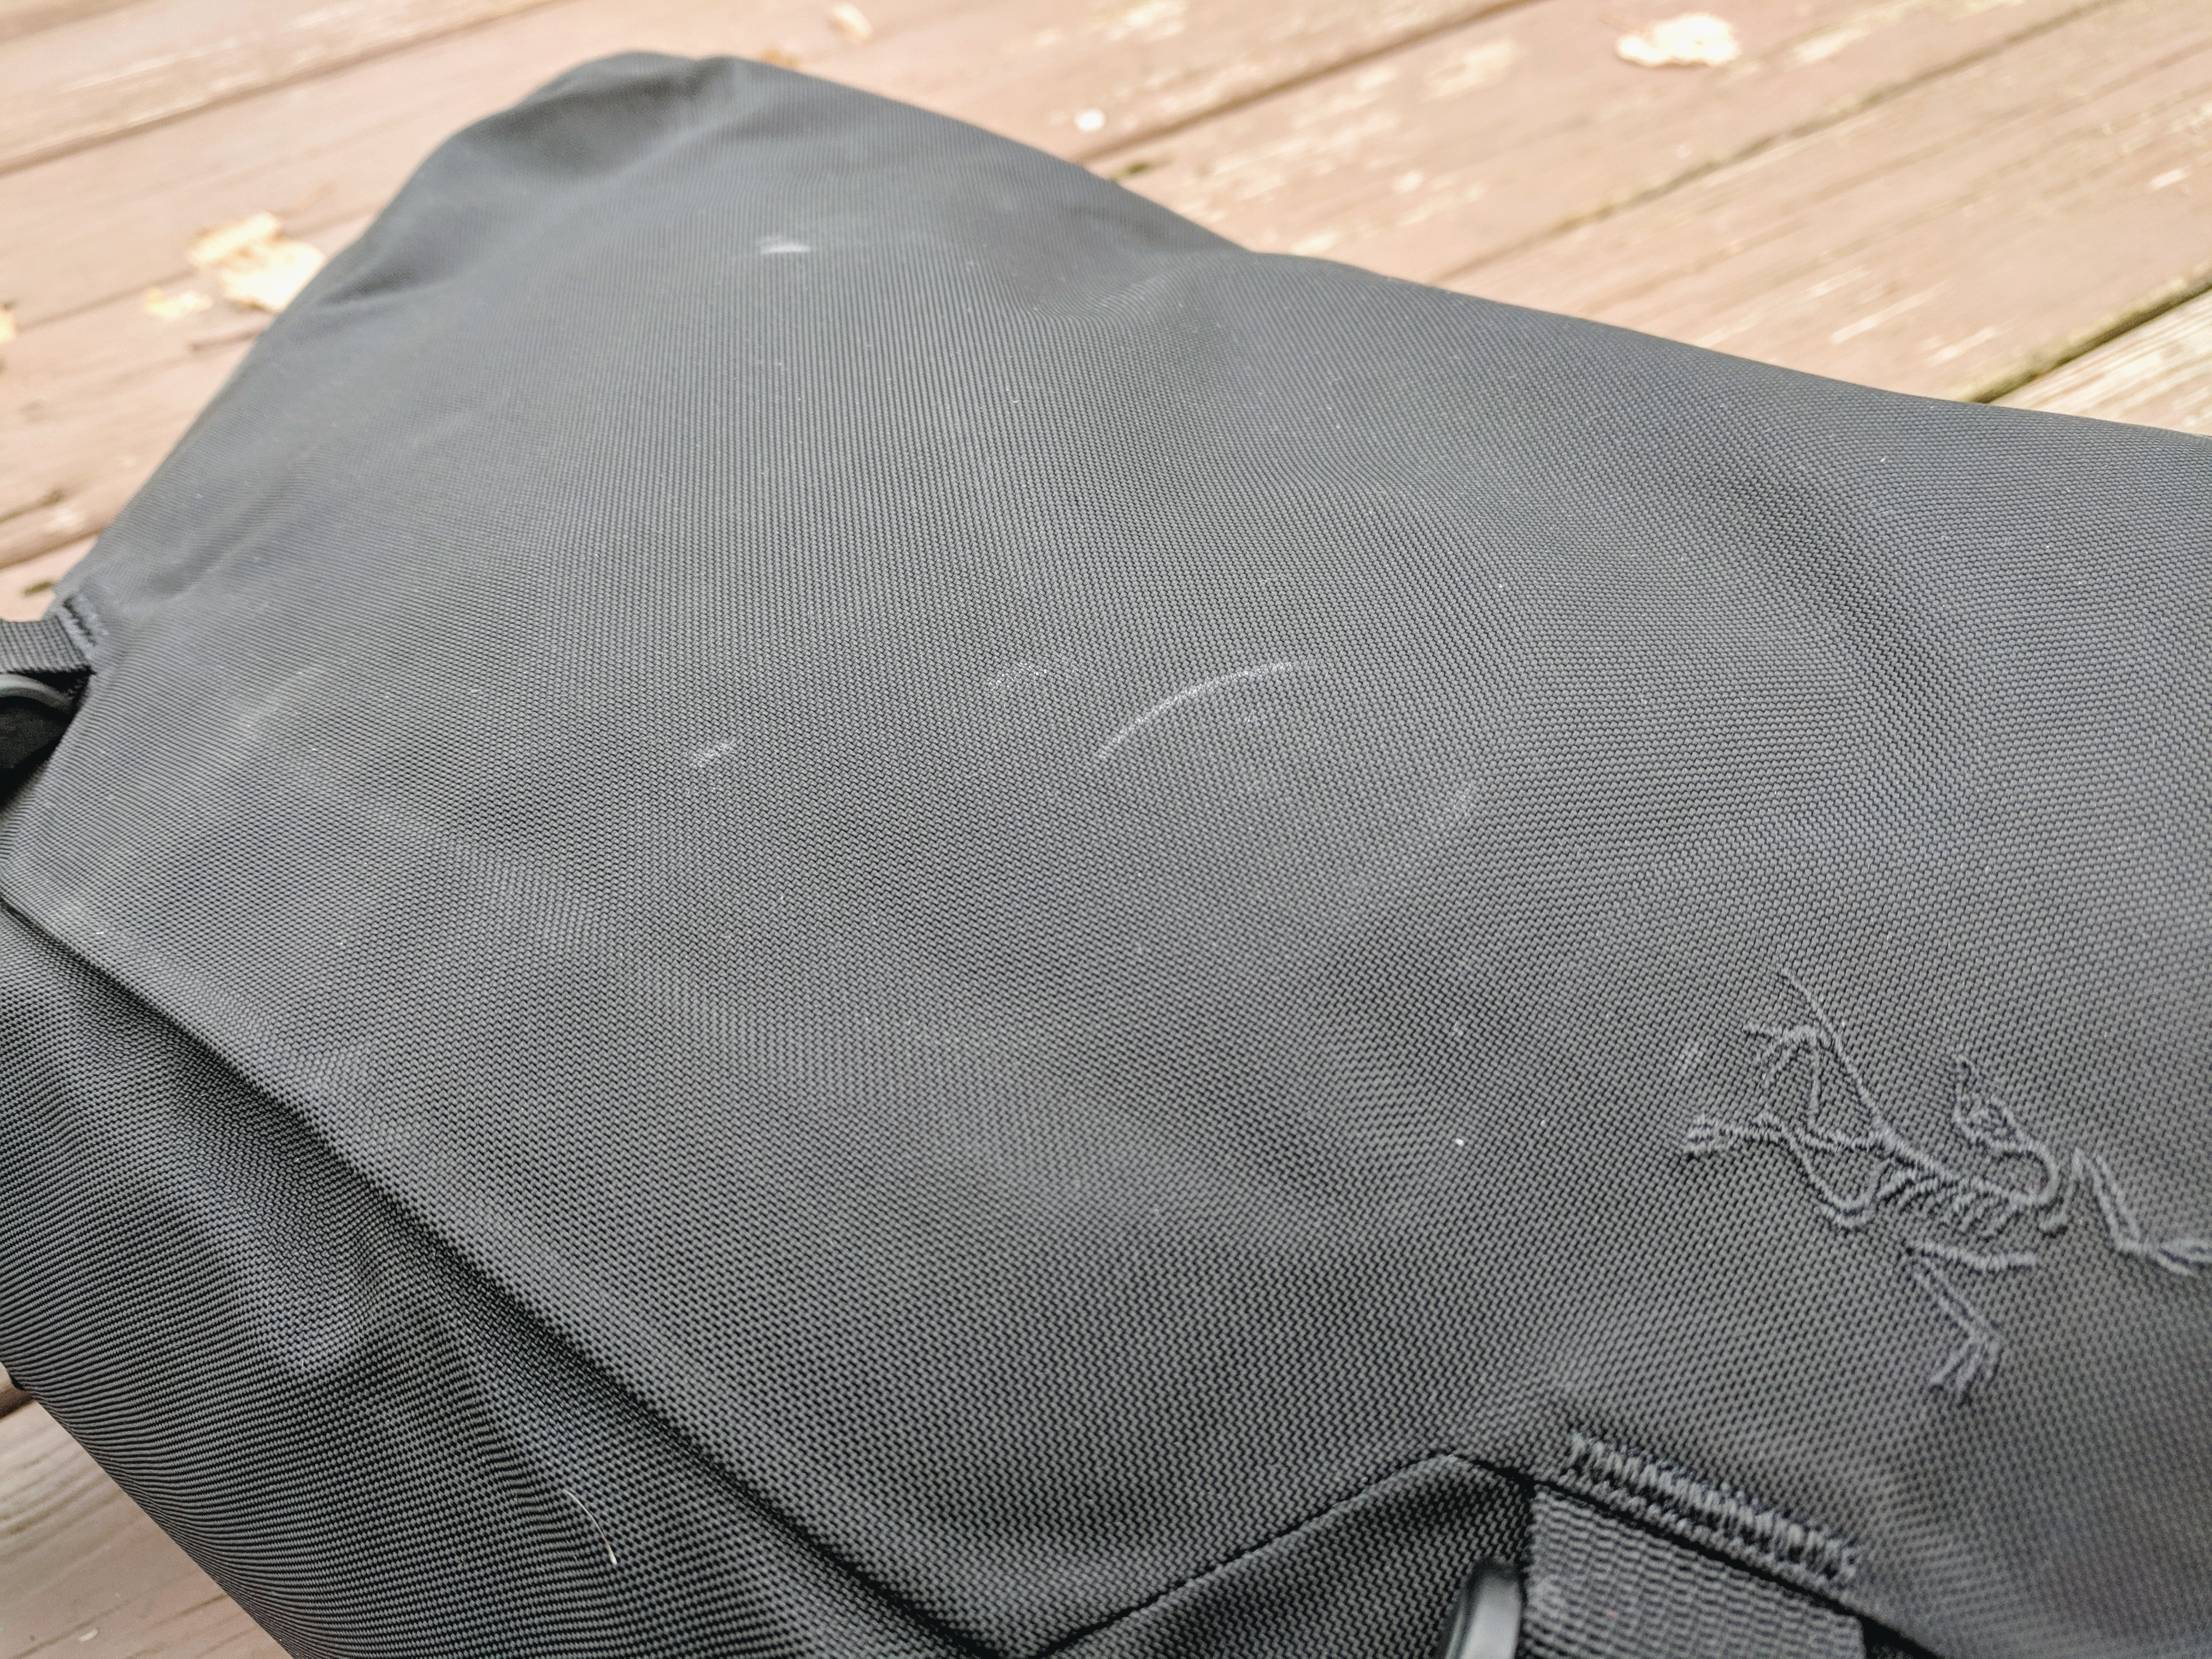 Arc'teryx Leaf courier 15 messenger bag review top flap marks durability scuffed